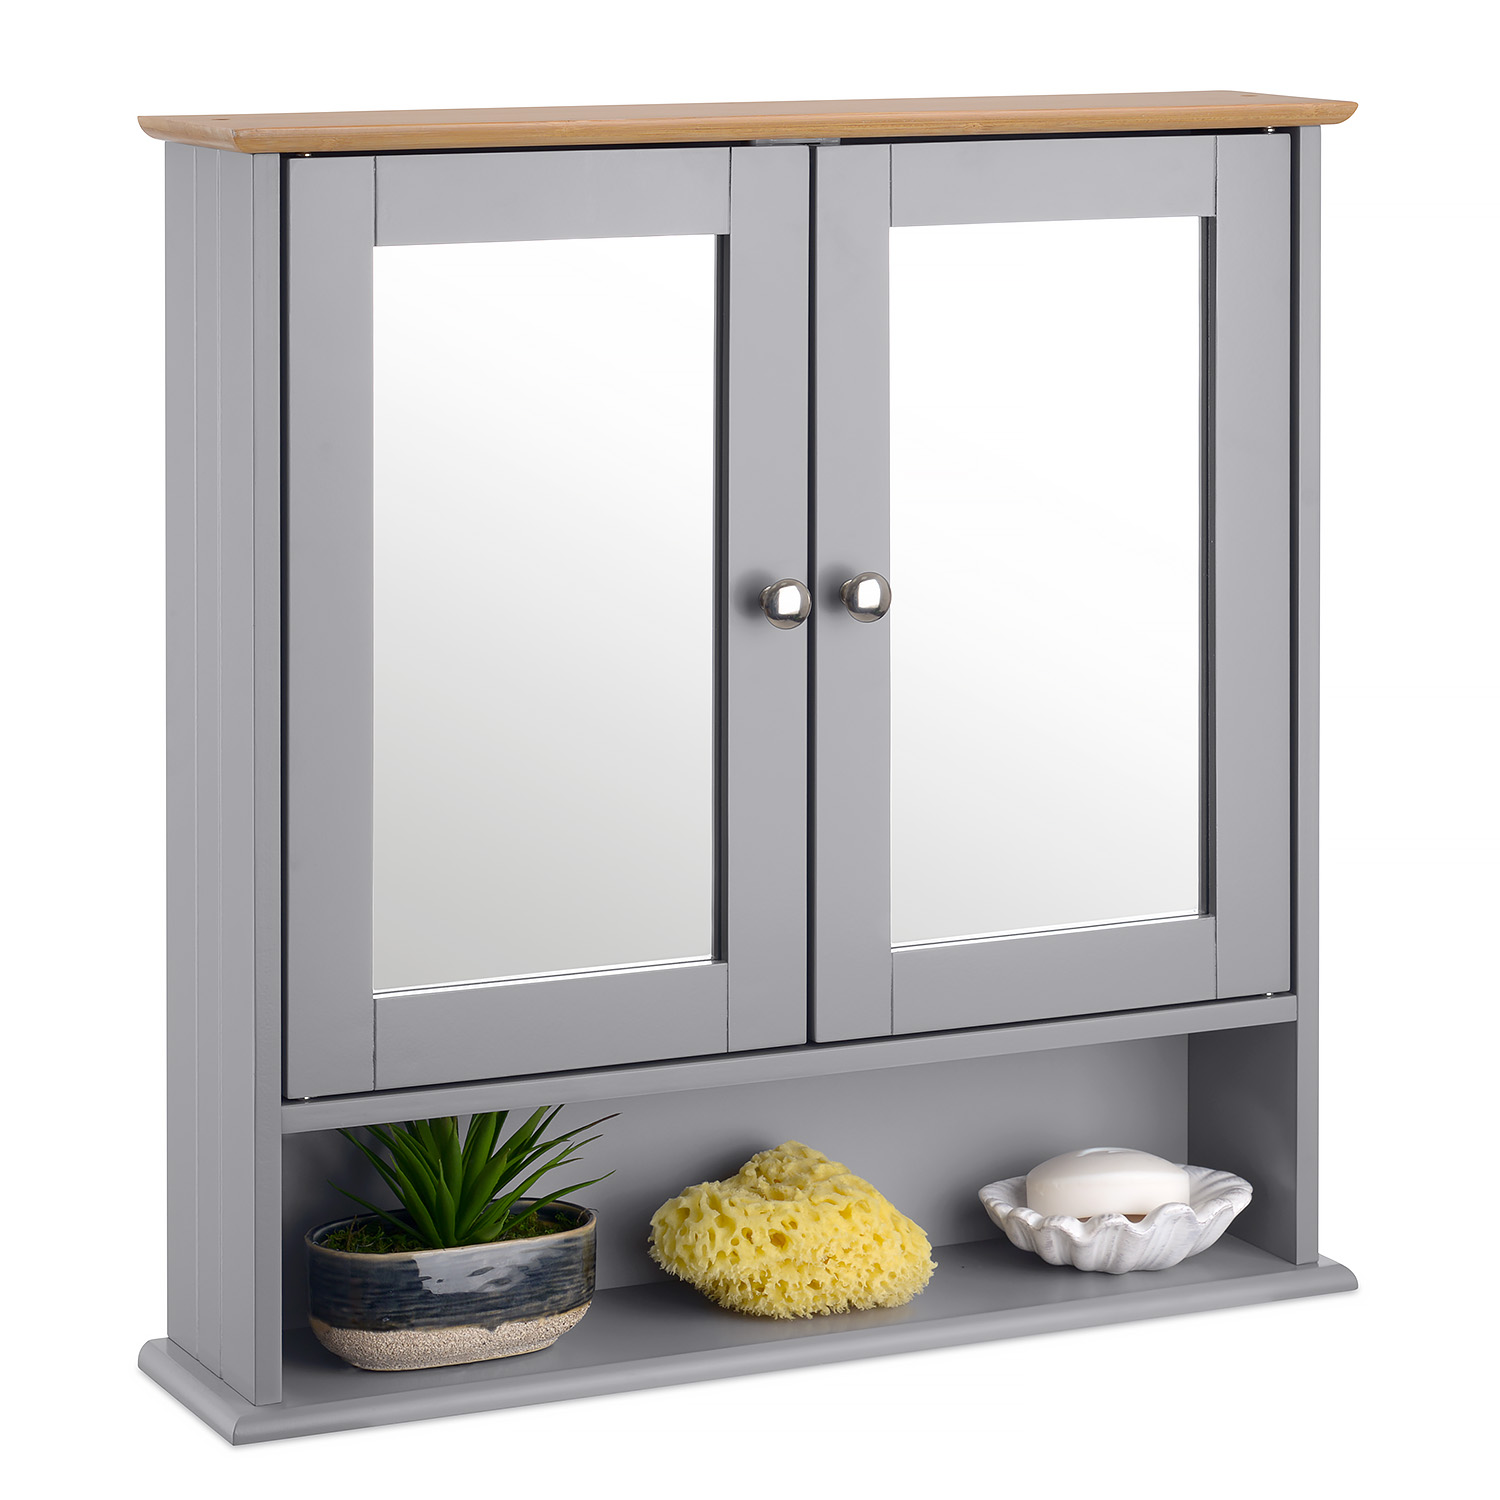 Image of Grey & Bamboo Mirrored Cabinet